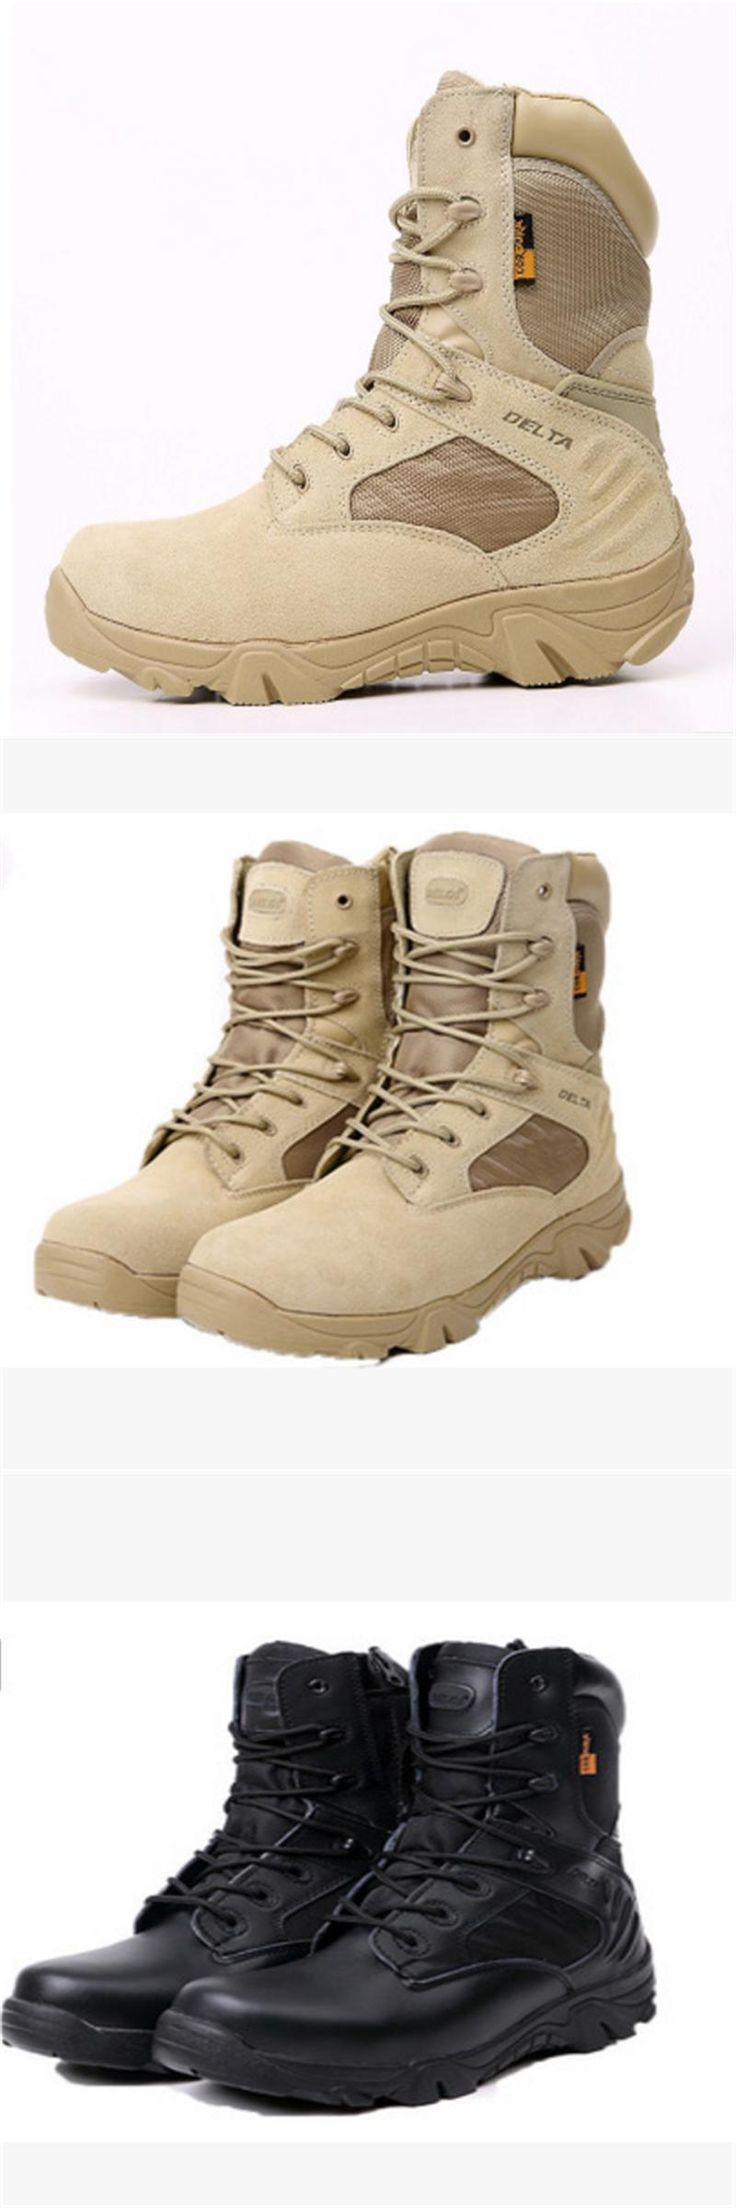 [Visit to Buy] 2017 Winter outdoor military boots men's special forces combat boots tactical boots desert boots Delta high to help wear militar #Advertisement